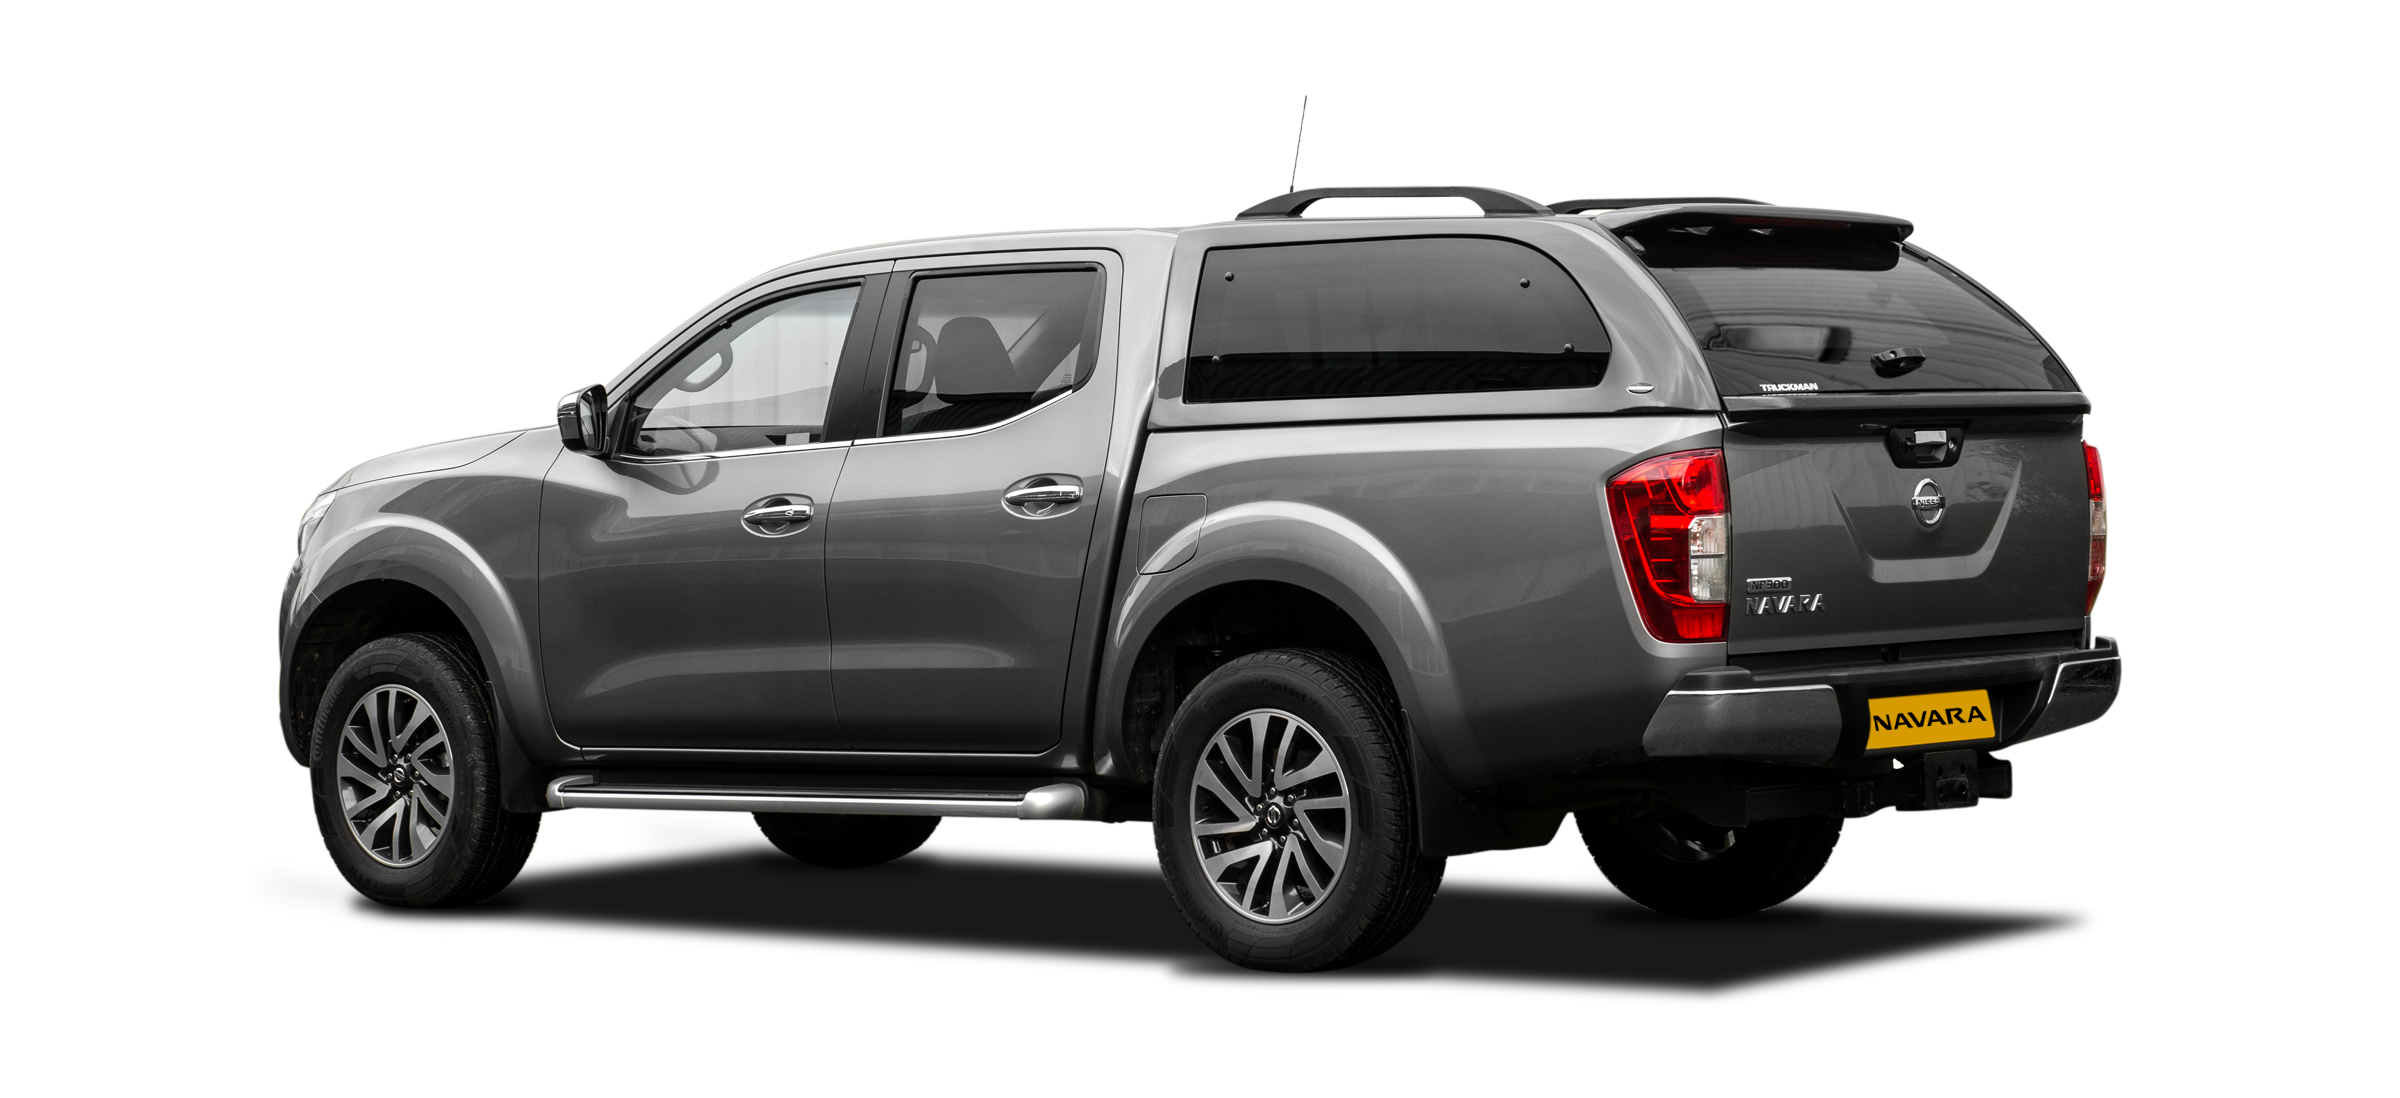 Find Nissan navarad23r accessories at Nissan Owners